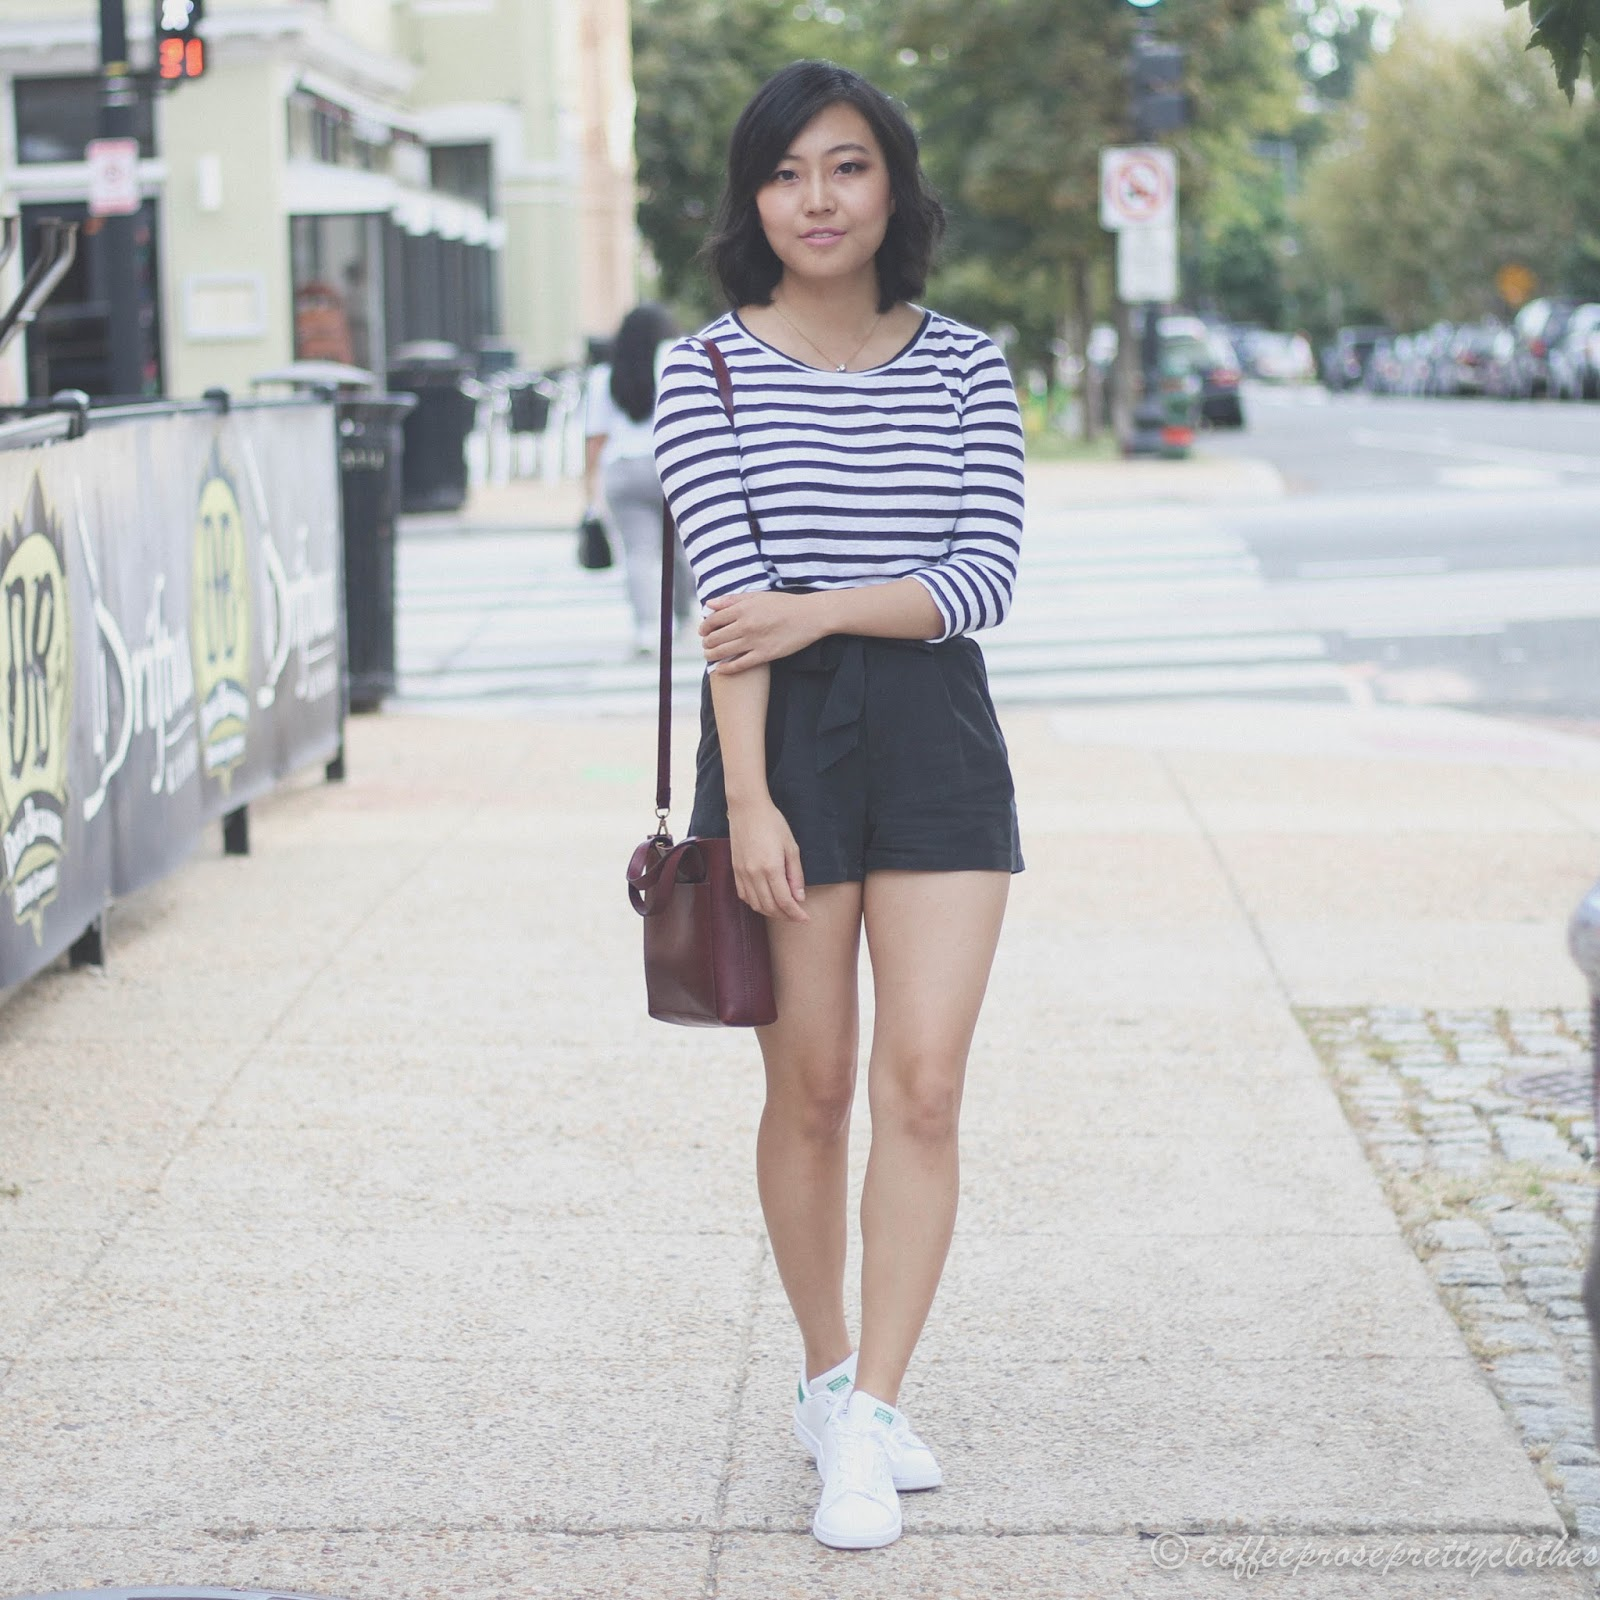 Madewell Transport Crossbody, Adidas Stan Smith, LOFT striped tee, H&M high waisted shorts